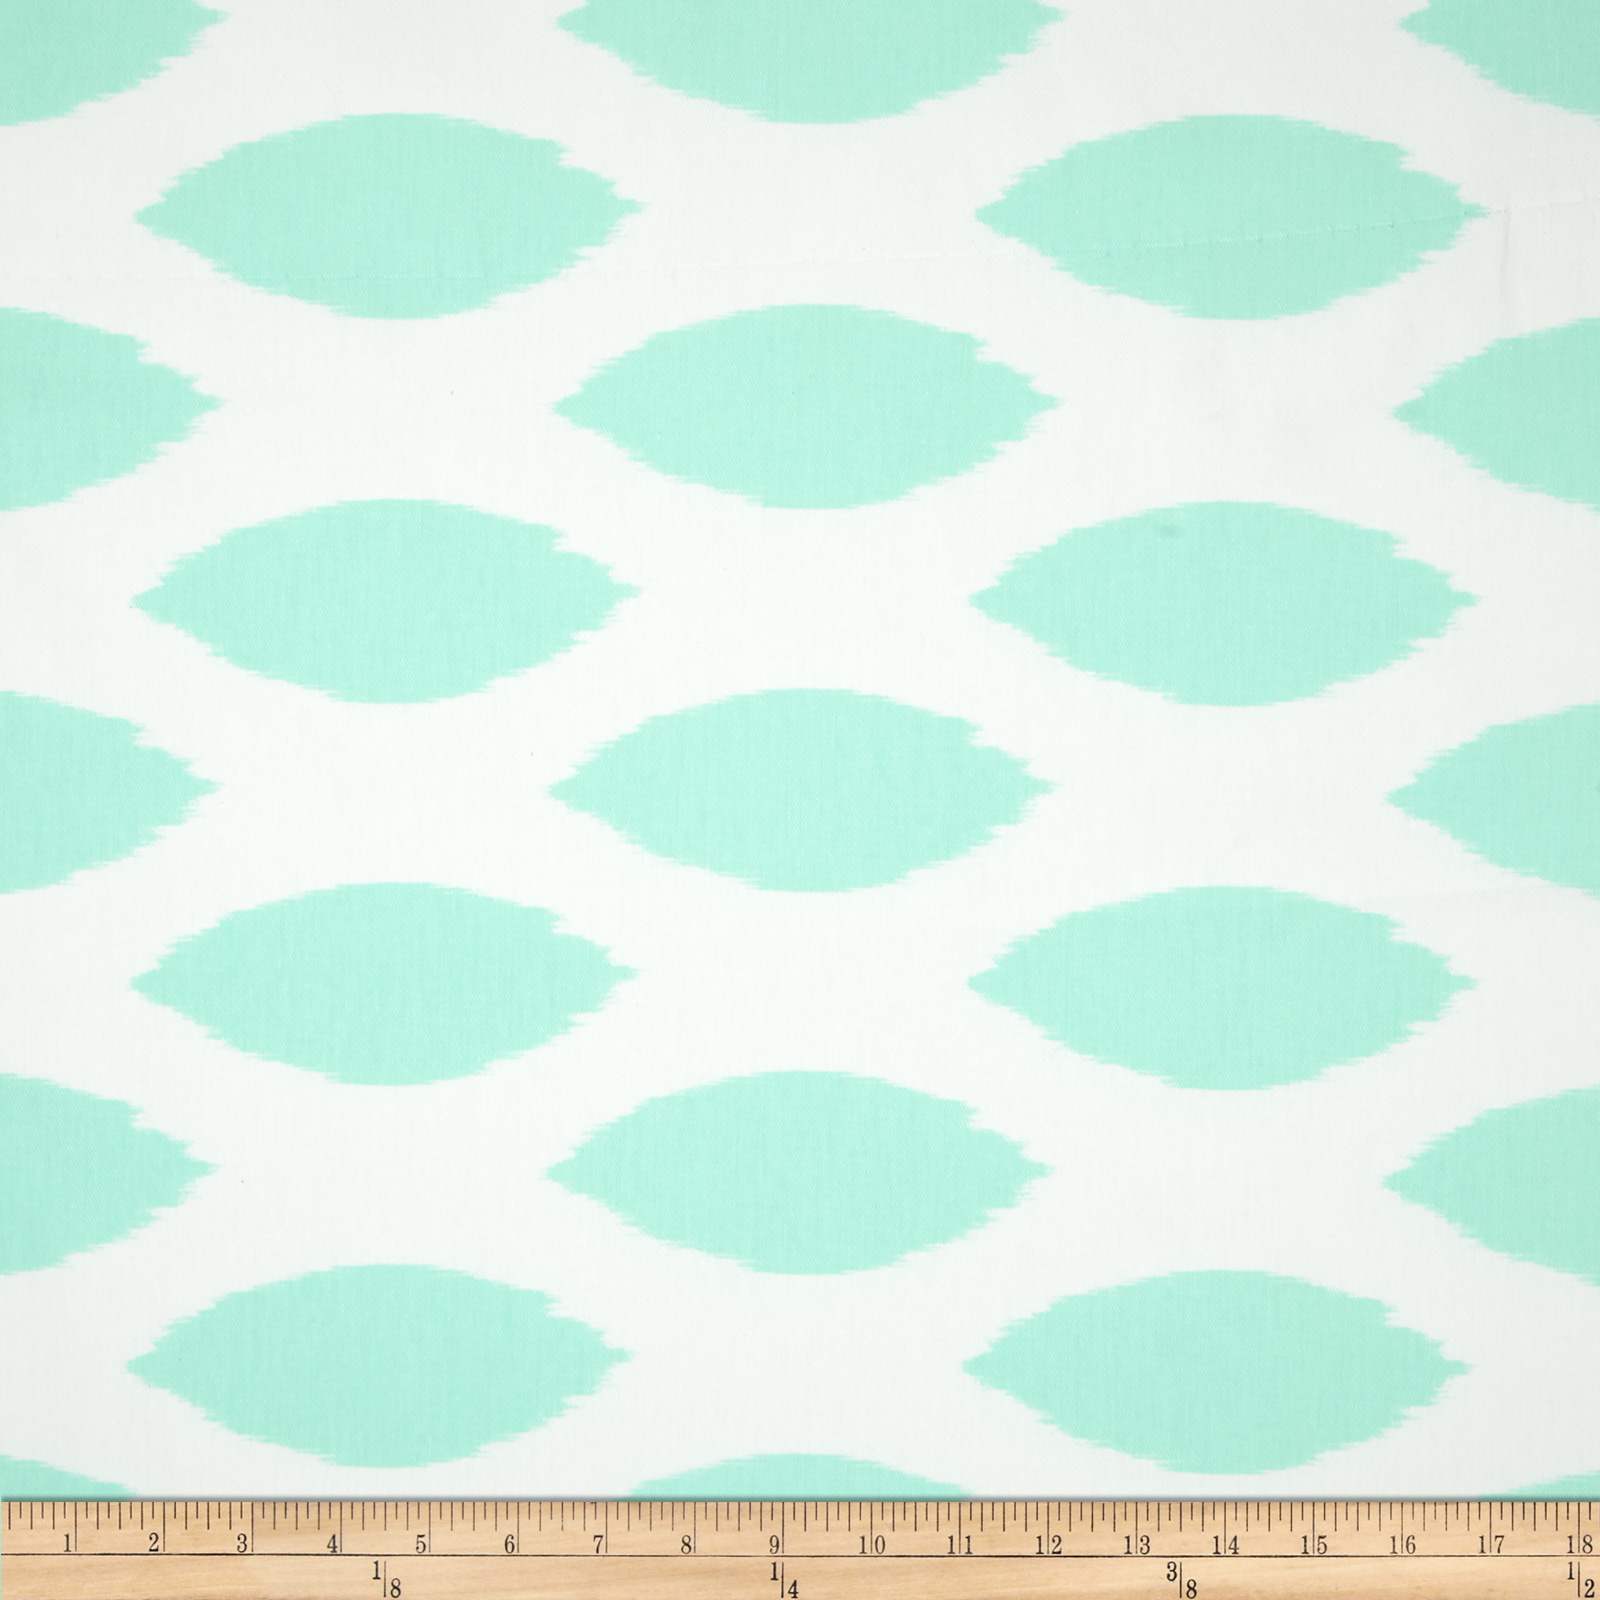 Premier Prints Twill Chipper Mint Fabric by Premier in USA